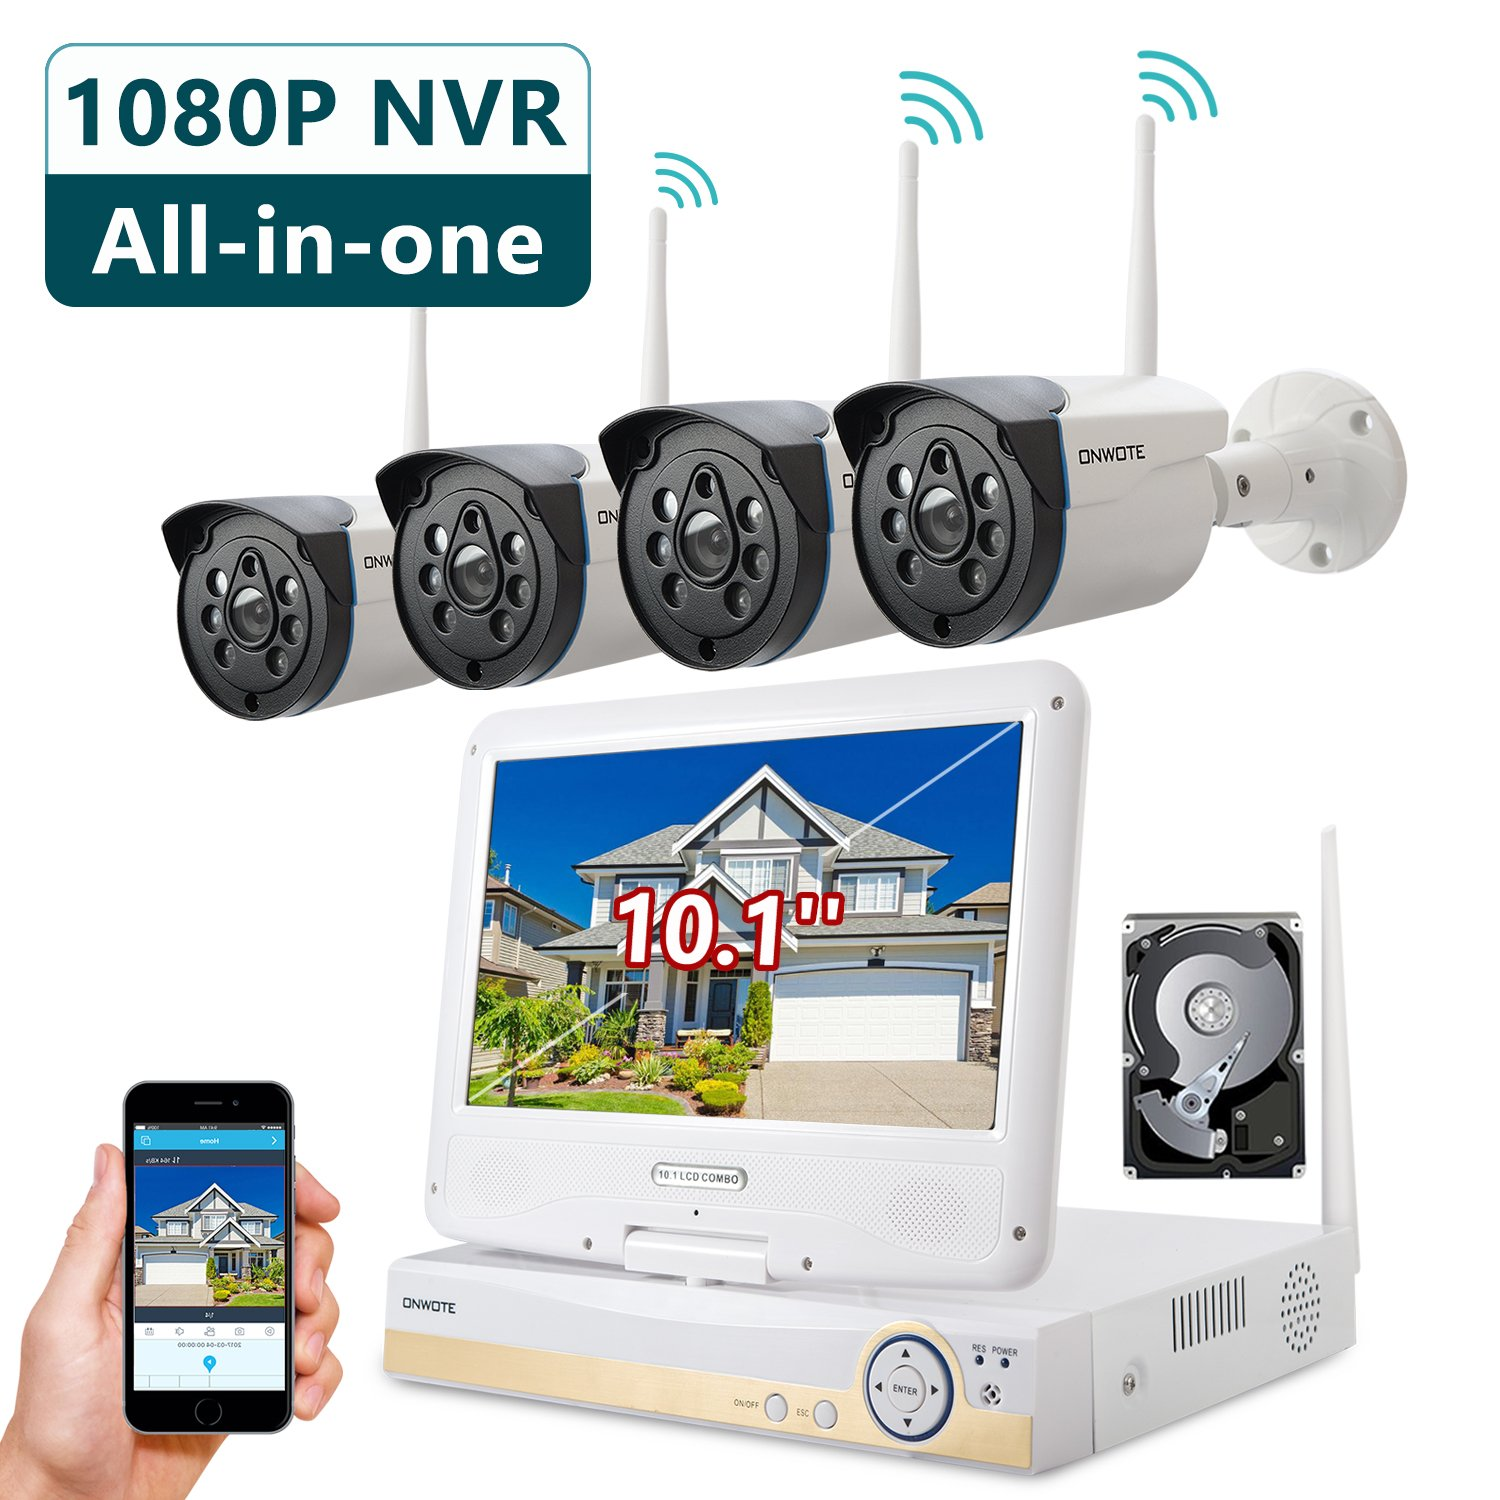 ONWOTE Plug n Play All-in-One 1080P HD NVR Wireless WiFi Security Camera System with 10.1'' LCD Monitor, 1TB Hard Drive and 4 Outdoor Night Vision IP Surveillance Camera (Built-in Router, Auto-Pair)